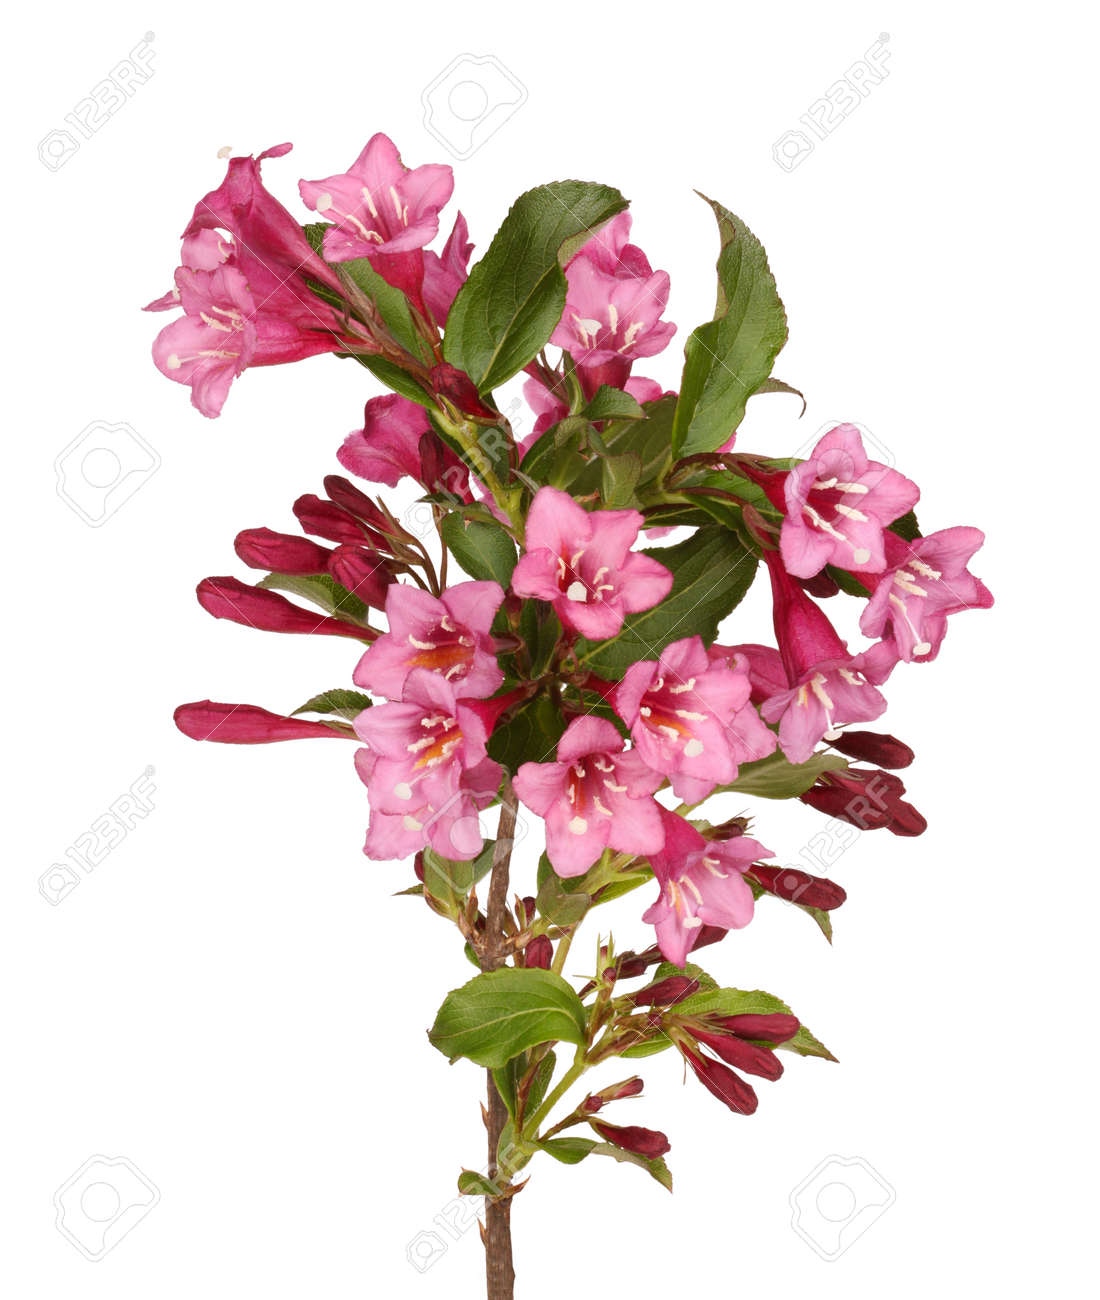 Branch With Many Pink Flowers Of Crabapple Malus Species Isolated